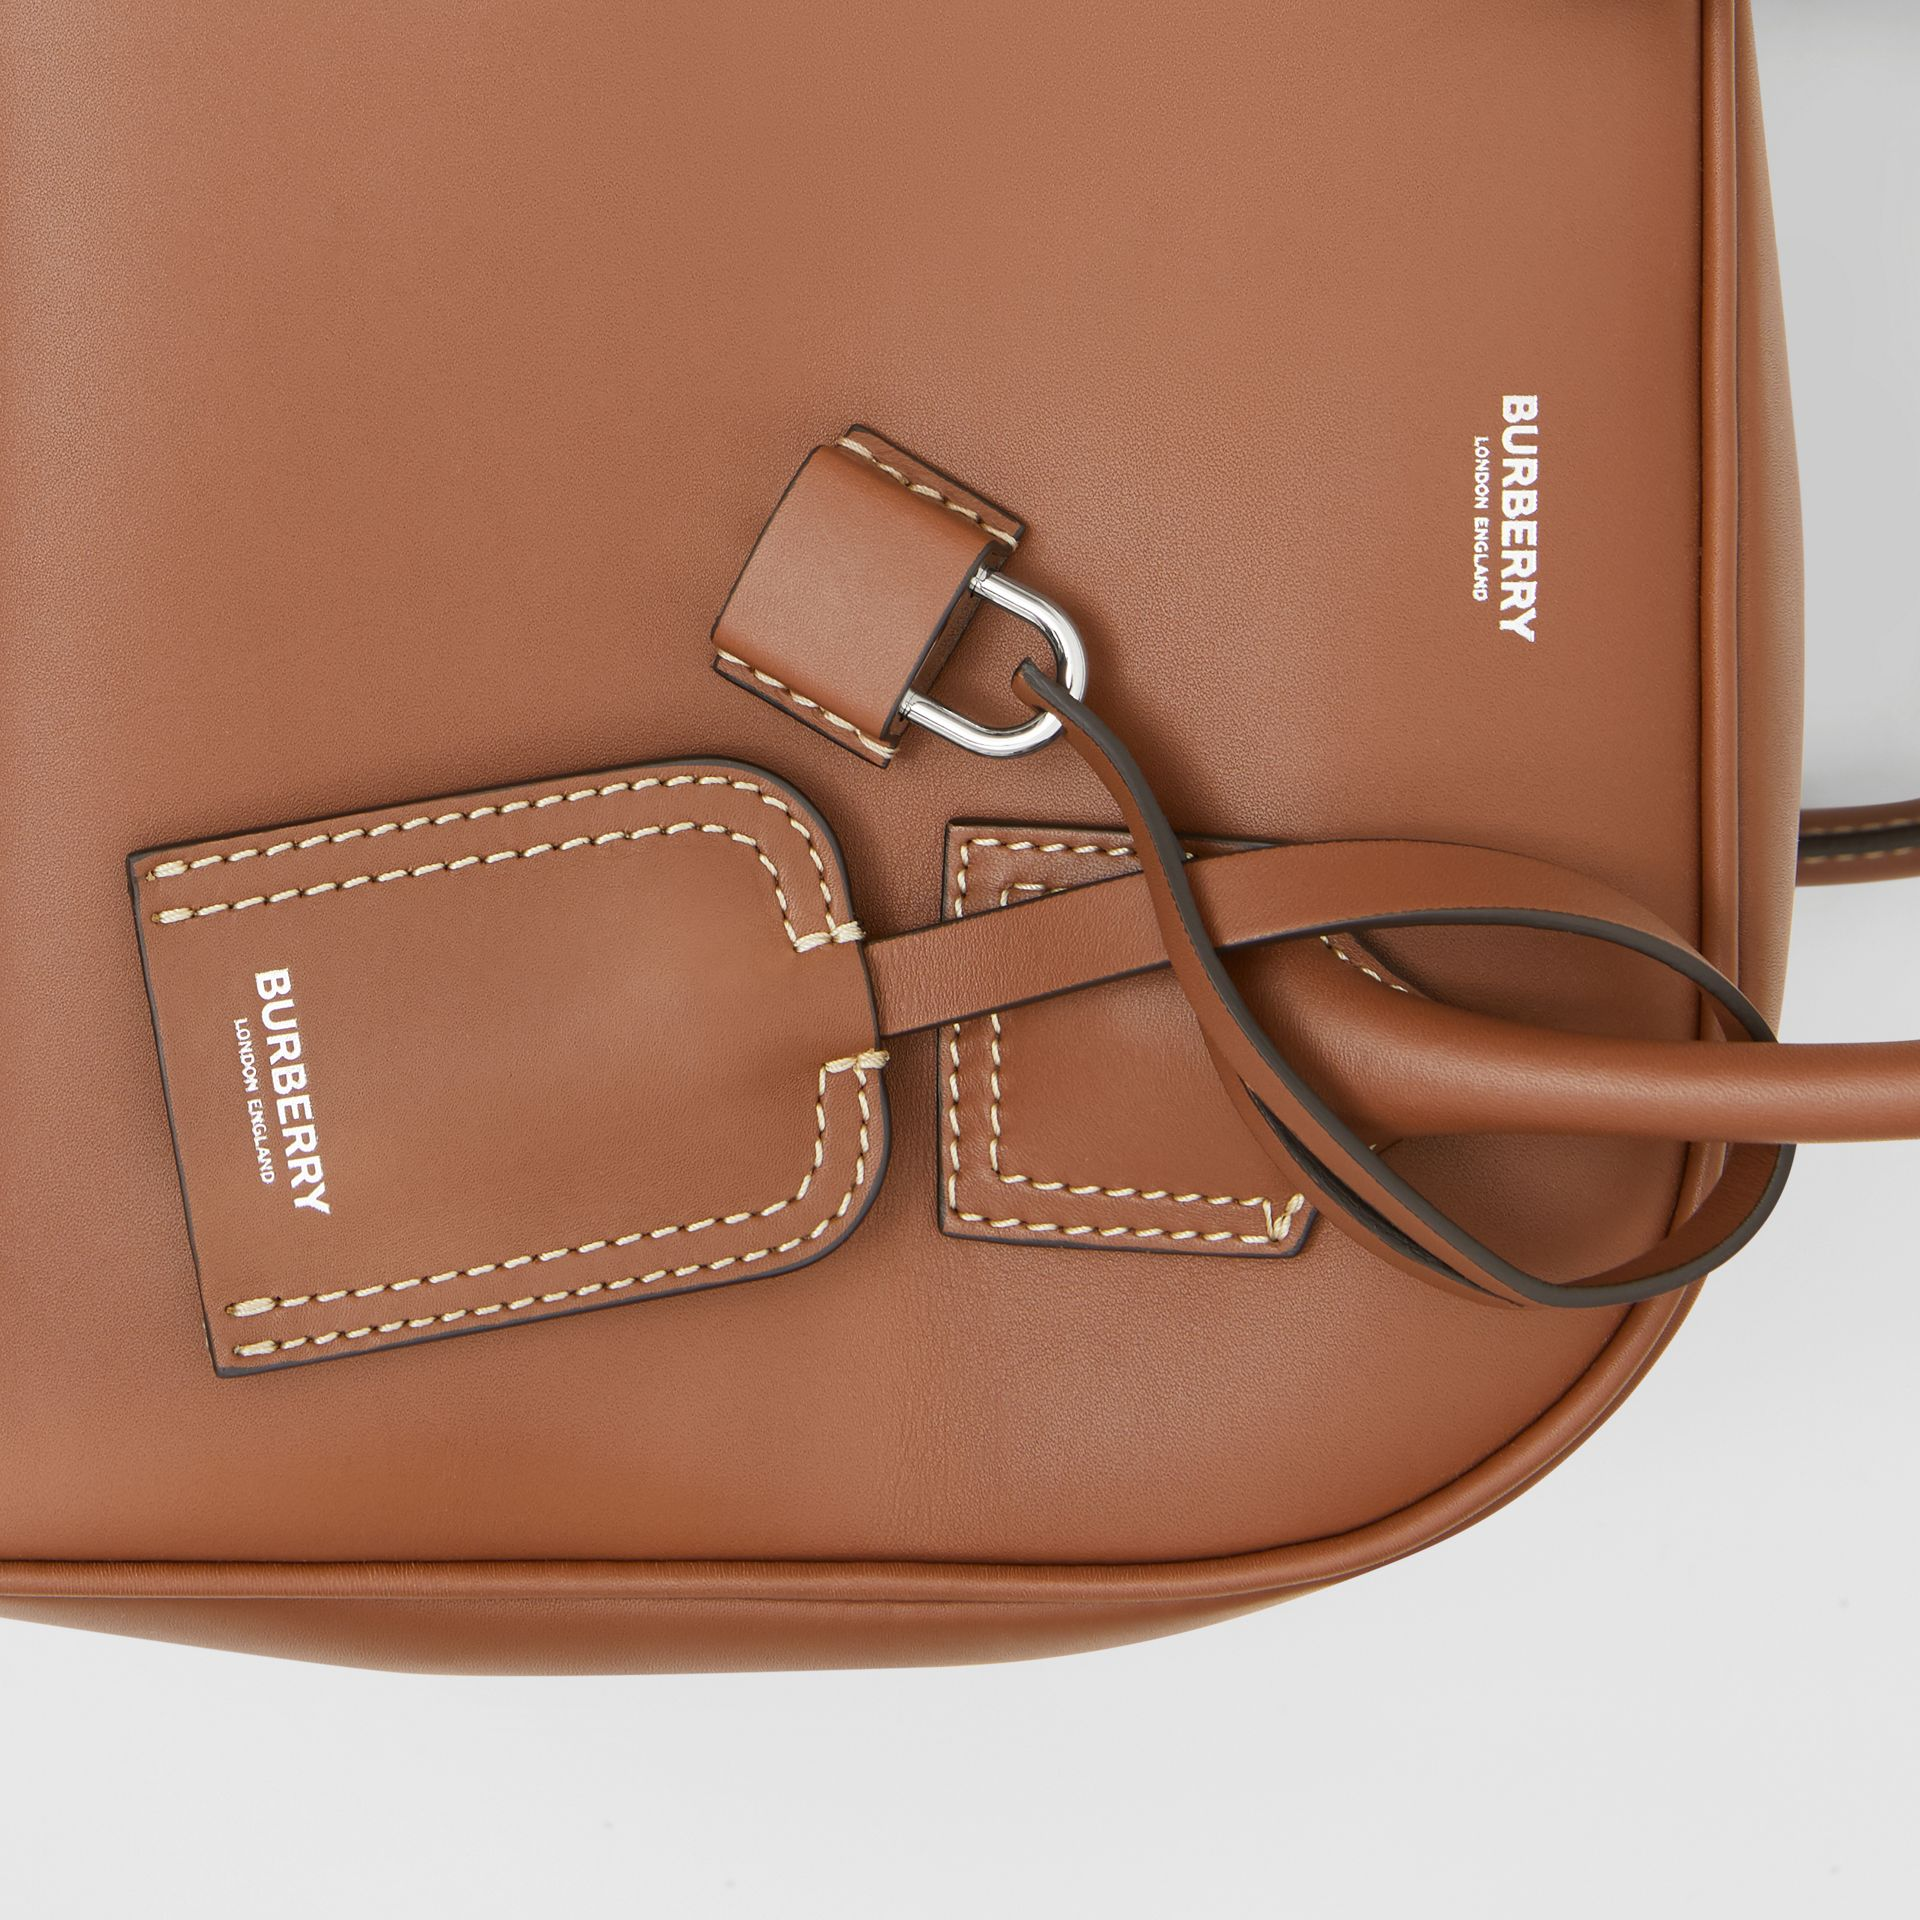 Small Leather Cube Bag in Malt Brown - Women | Burberry - gallery image 1